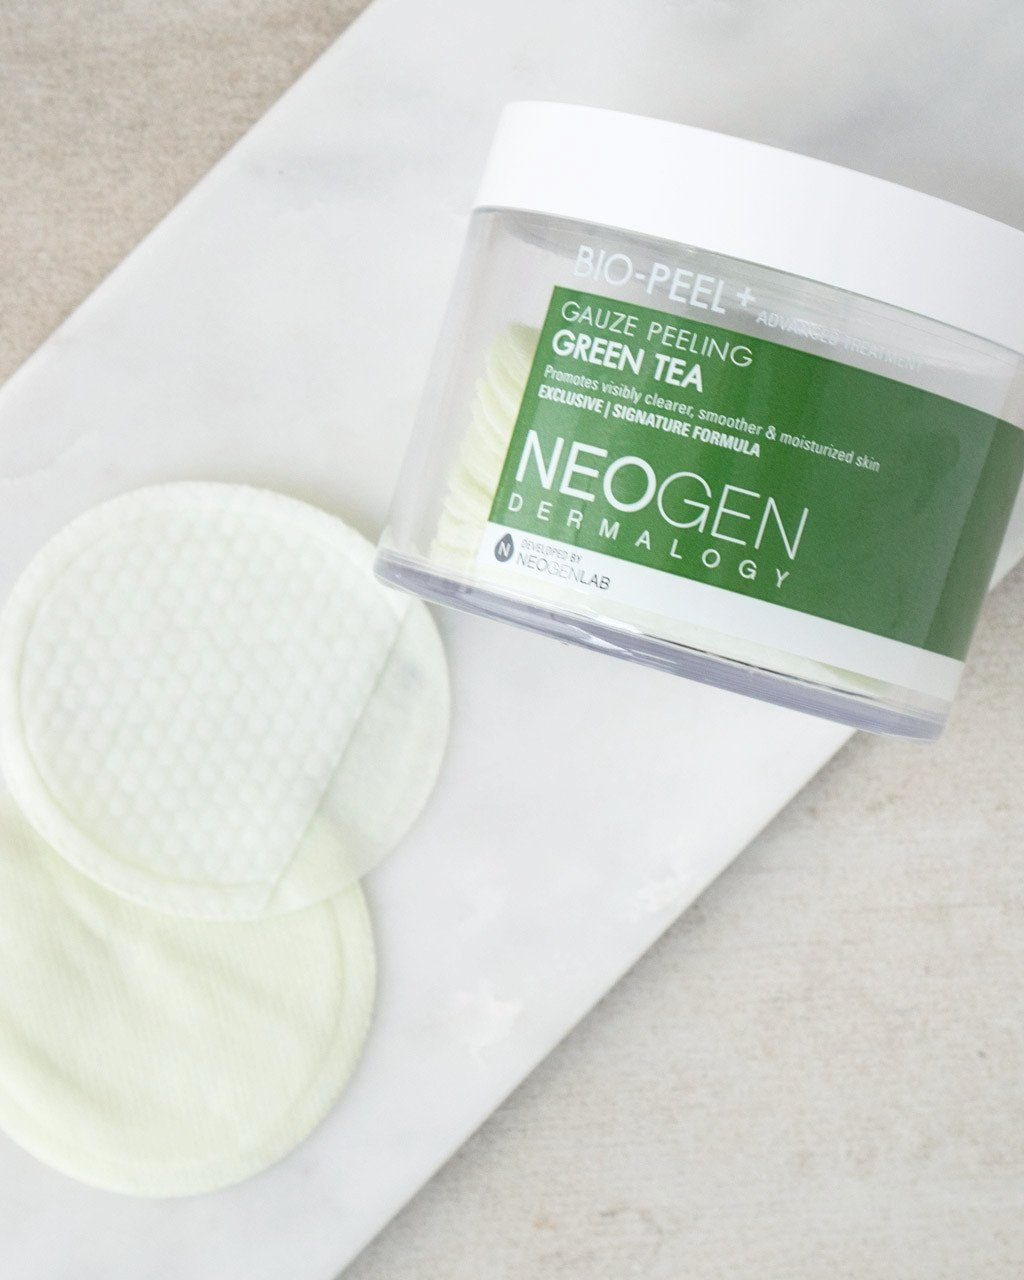 Bio-Peel Gauze Peeling Green Tea Product Picture